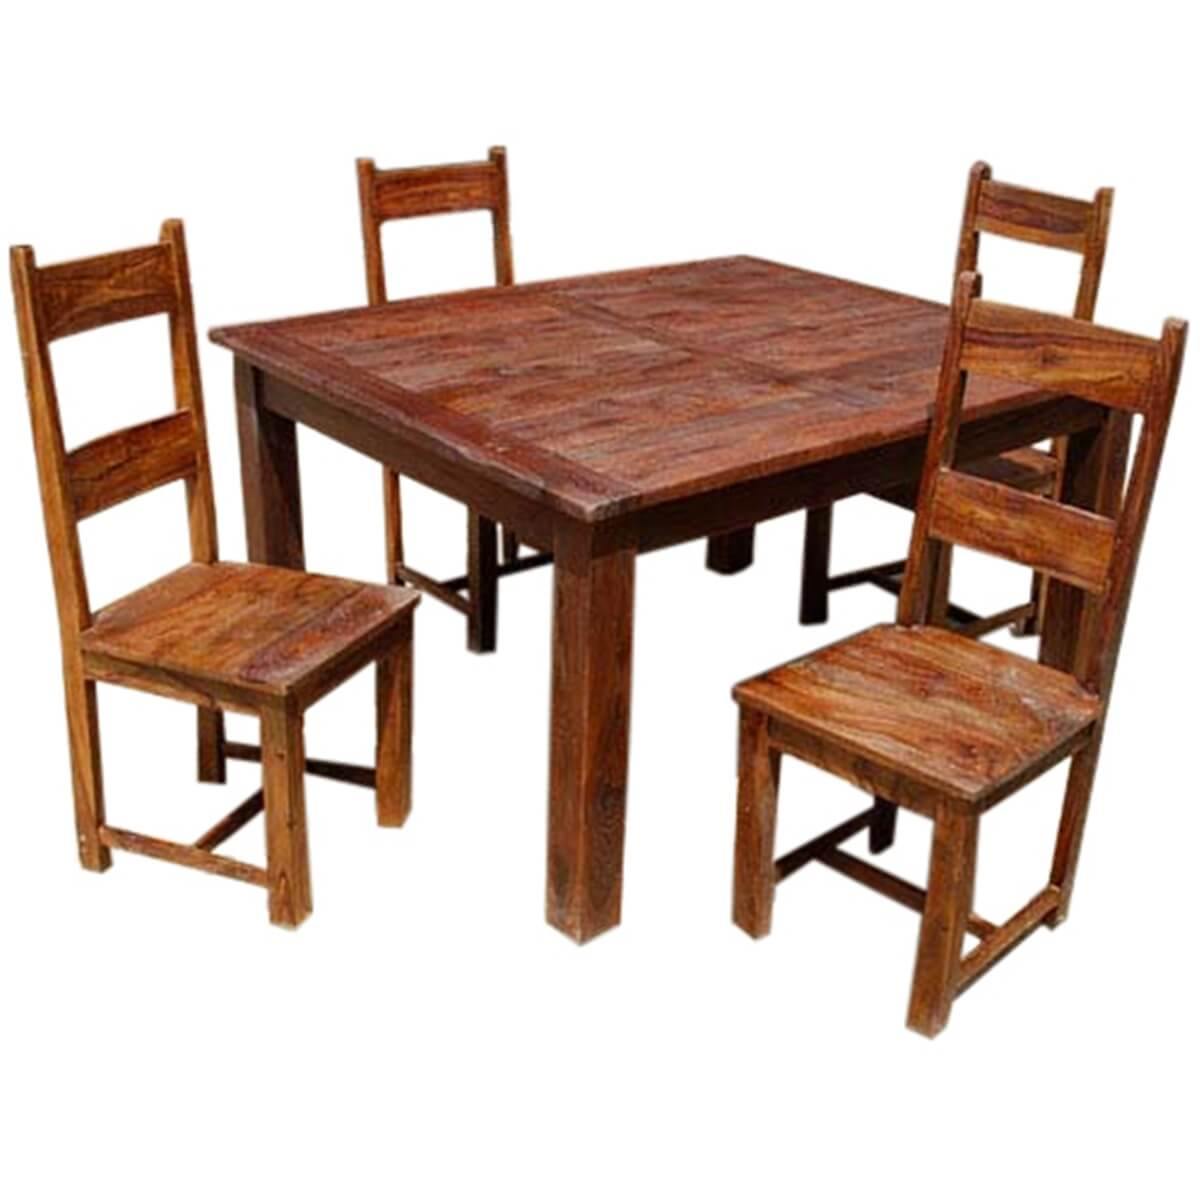 Rustic Dining Room Table Sets: Rustic Solid Wood Appalachian Dining Room Table & Chair Set